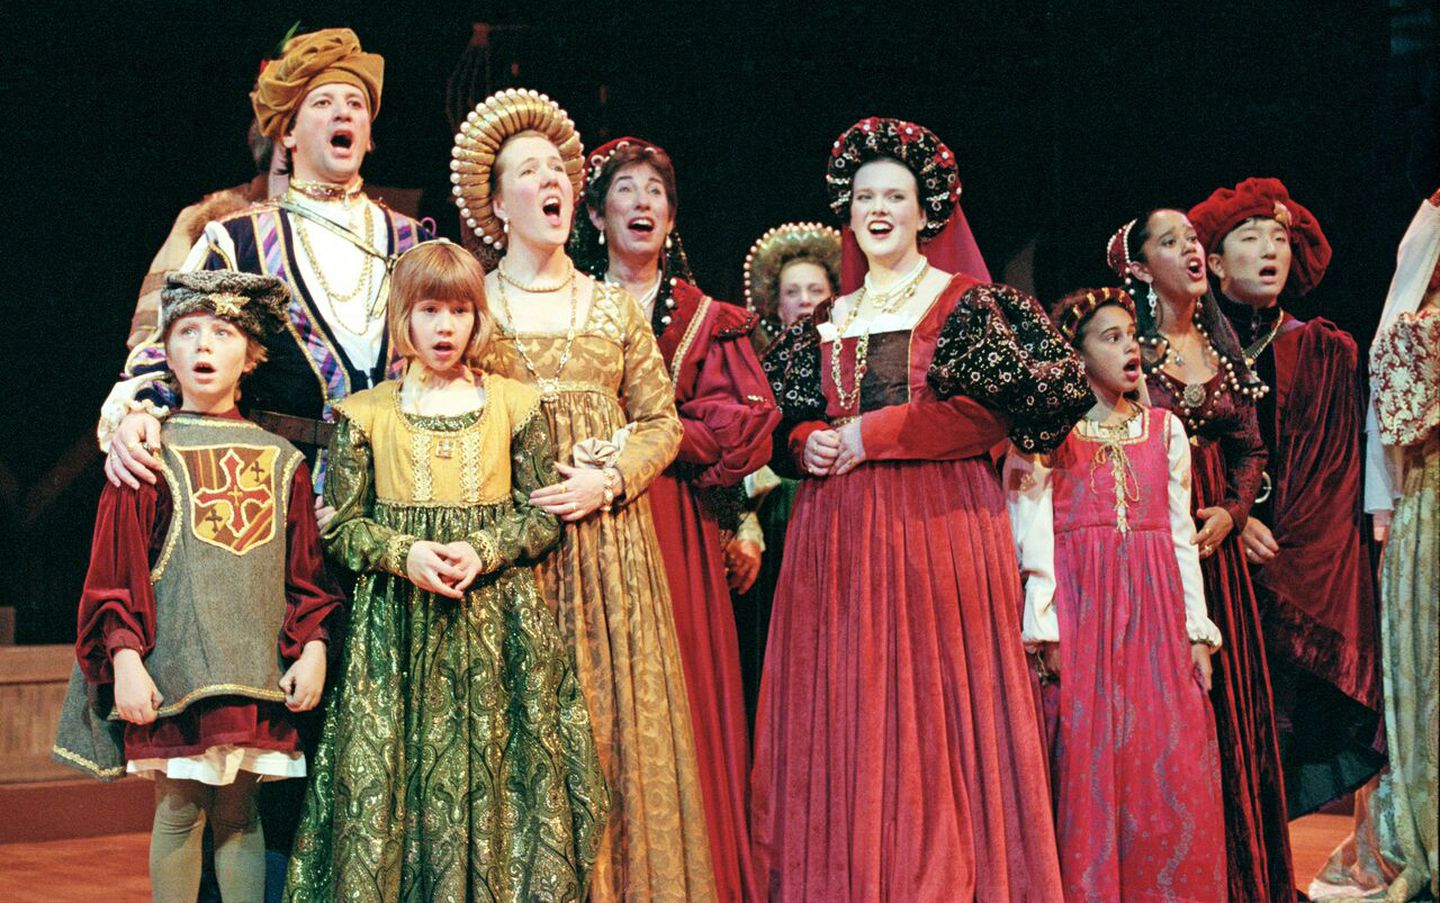 """The Christmas Revels: A Venetian Celebration of the Winter Solstice"" will be at Sanders Theatre, beginning Dec. 8."